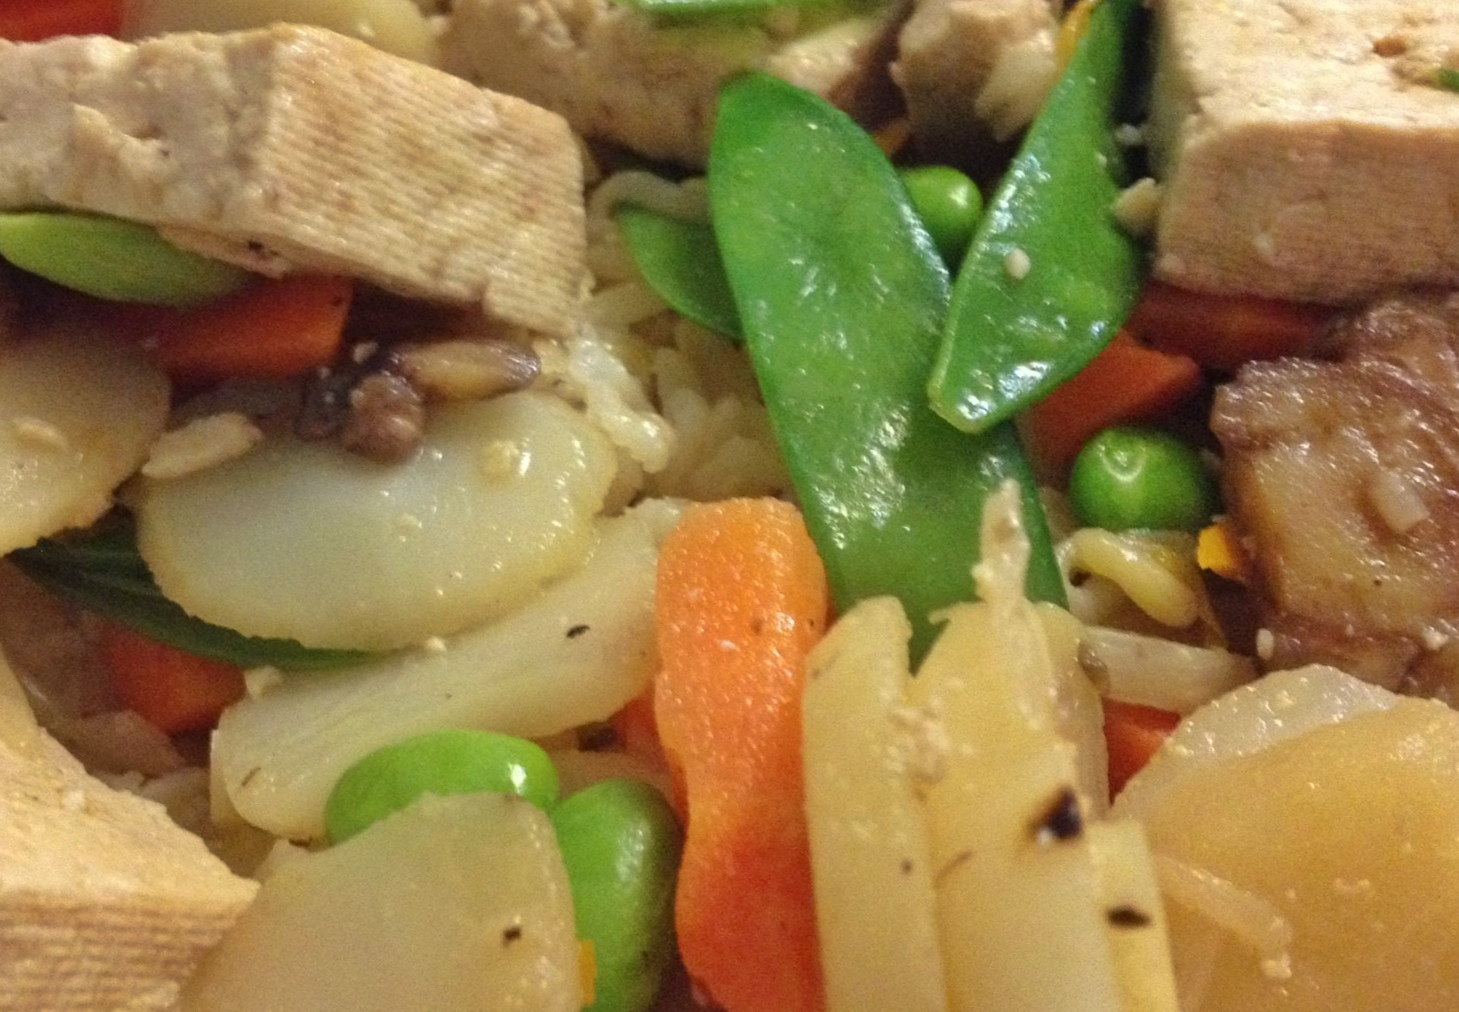 Mix it Up: Citrus Tofu with Stir-Fried Veggies over Brown Rice